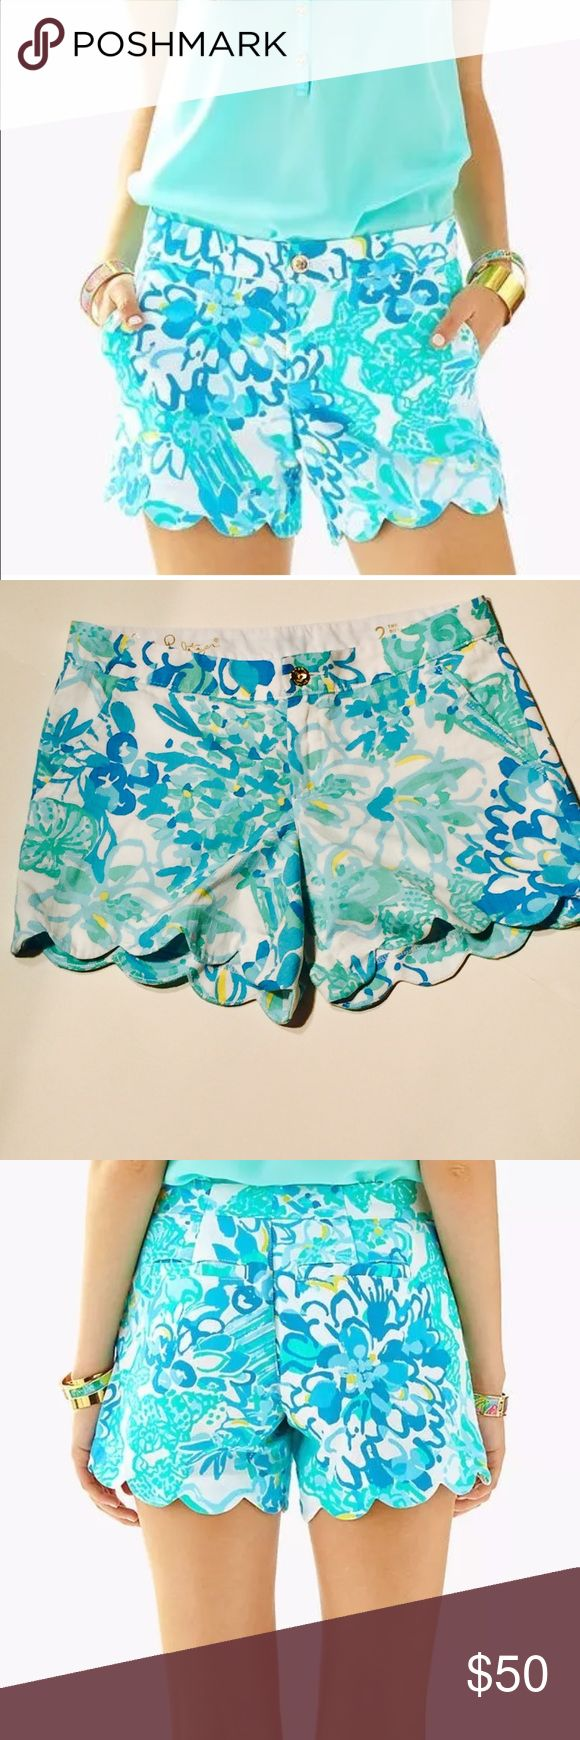 """Lilly Pulitzer Buttercup shorts Lilly Pulitzer  Buttercup Shorts - """"Resort White In A Pinch""""The scalloped hem begs to be paired with fun wedges for a little lift!   In Jumbo Pique fabric:  The vibrant prints promise to stay just as bright as the day you brought them home no matter how many times you wash it  5"""" Inseam, Garment Washed, Zip Fly Short With Scallop Hem. Lilly Pulitzer Shorts"""